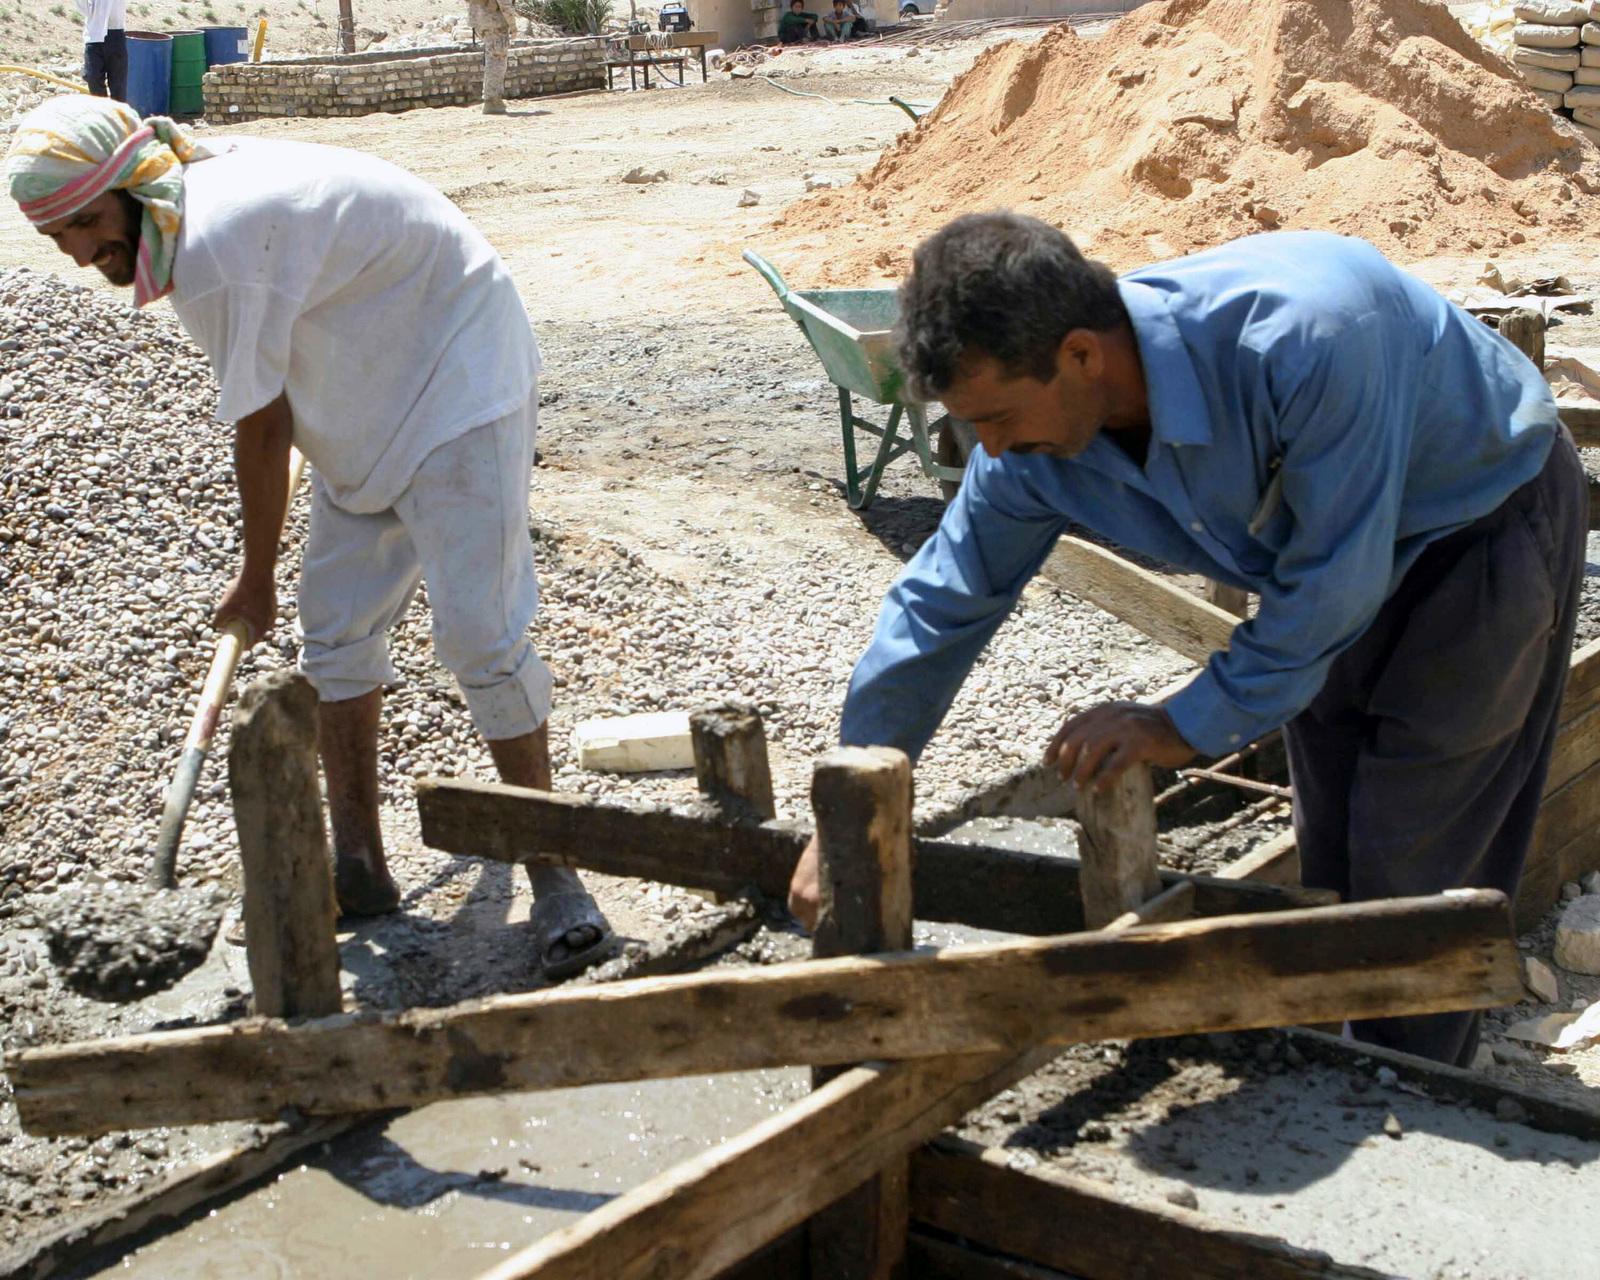 Two local Iraqi civilian contractors work on building a